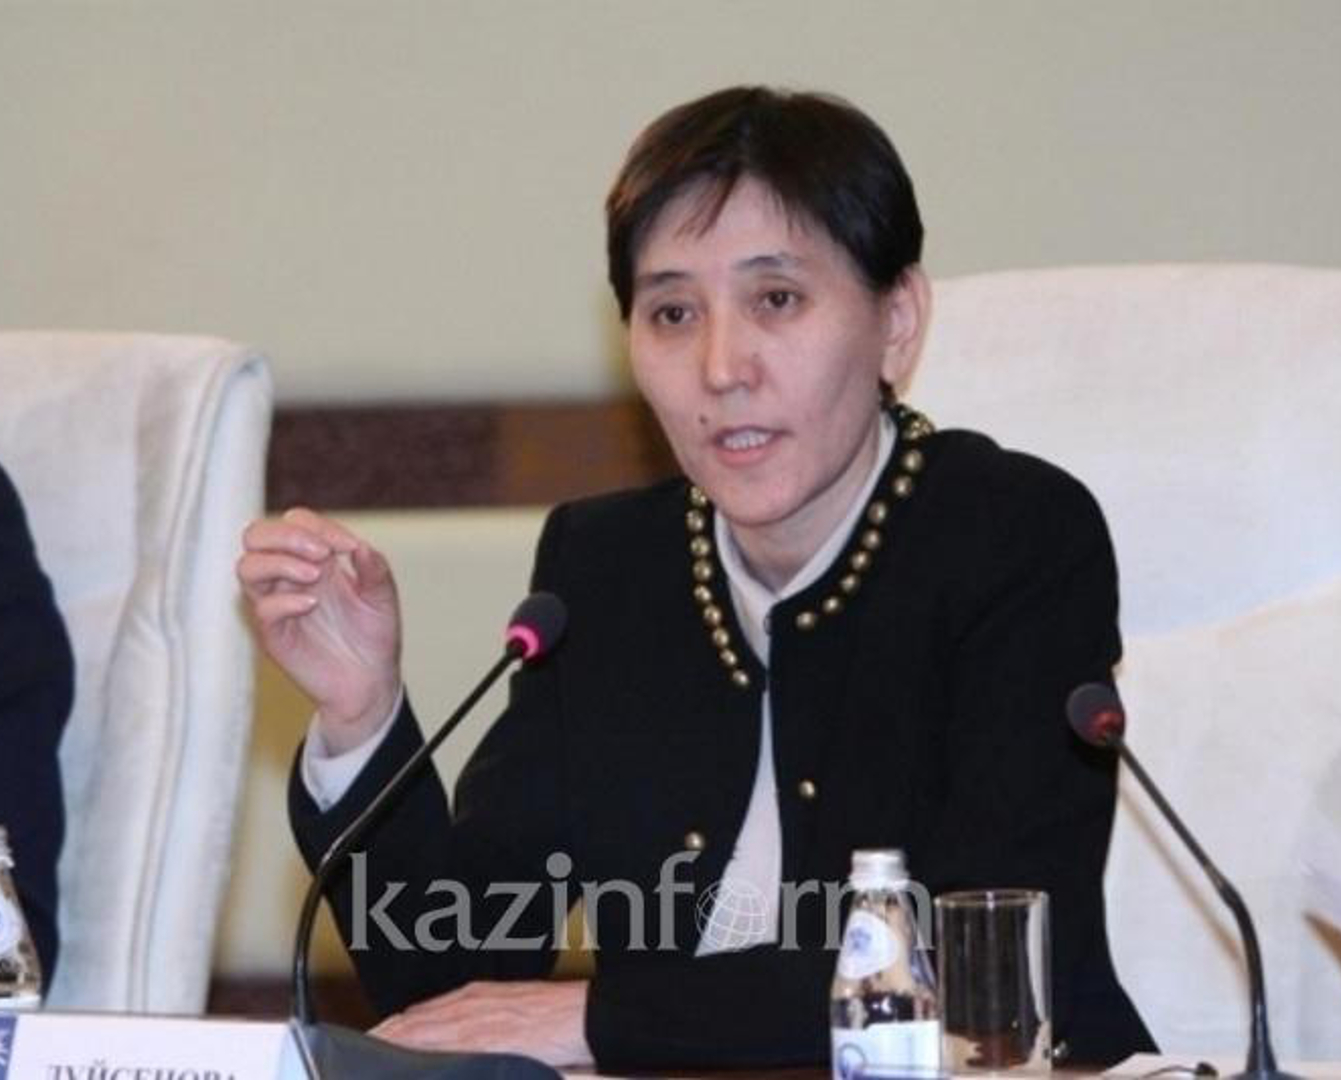 Kazakhstan to change migration policy